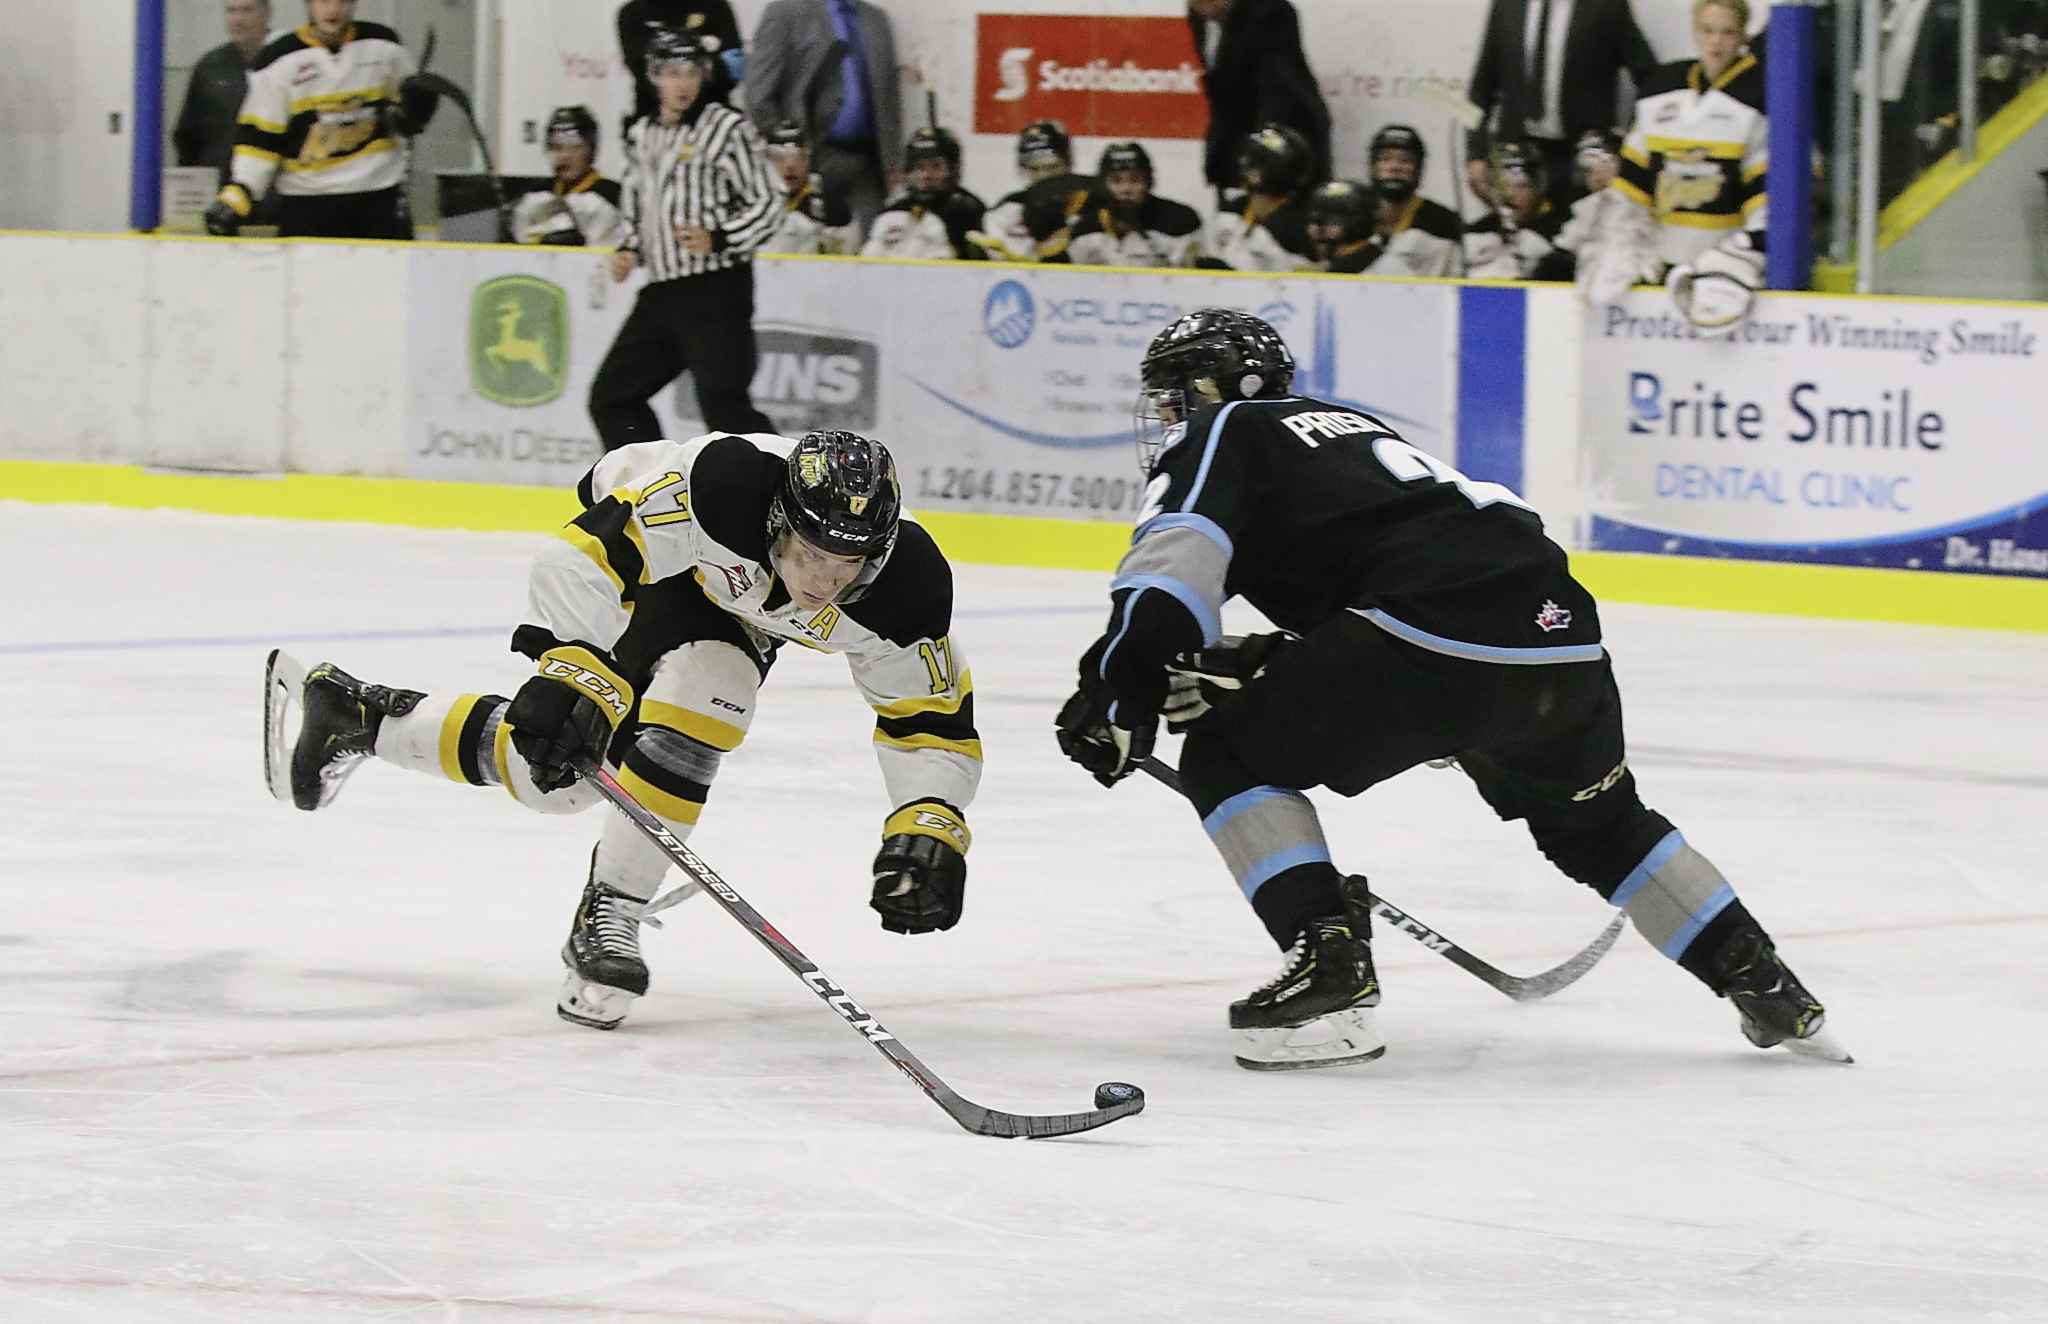 Forward Ridly Greig of the Brandon Wheat Kings unsuccessfully tries to dance around Winnipeg Ice defender Karter Prosofsky during Western Hockey League pre-season action at Portage la Prairie's Stride Place on Saturday, Sept. 7, 2019. Winnipeg won 5-1. (Perry Bergson/The Brandon Sun)